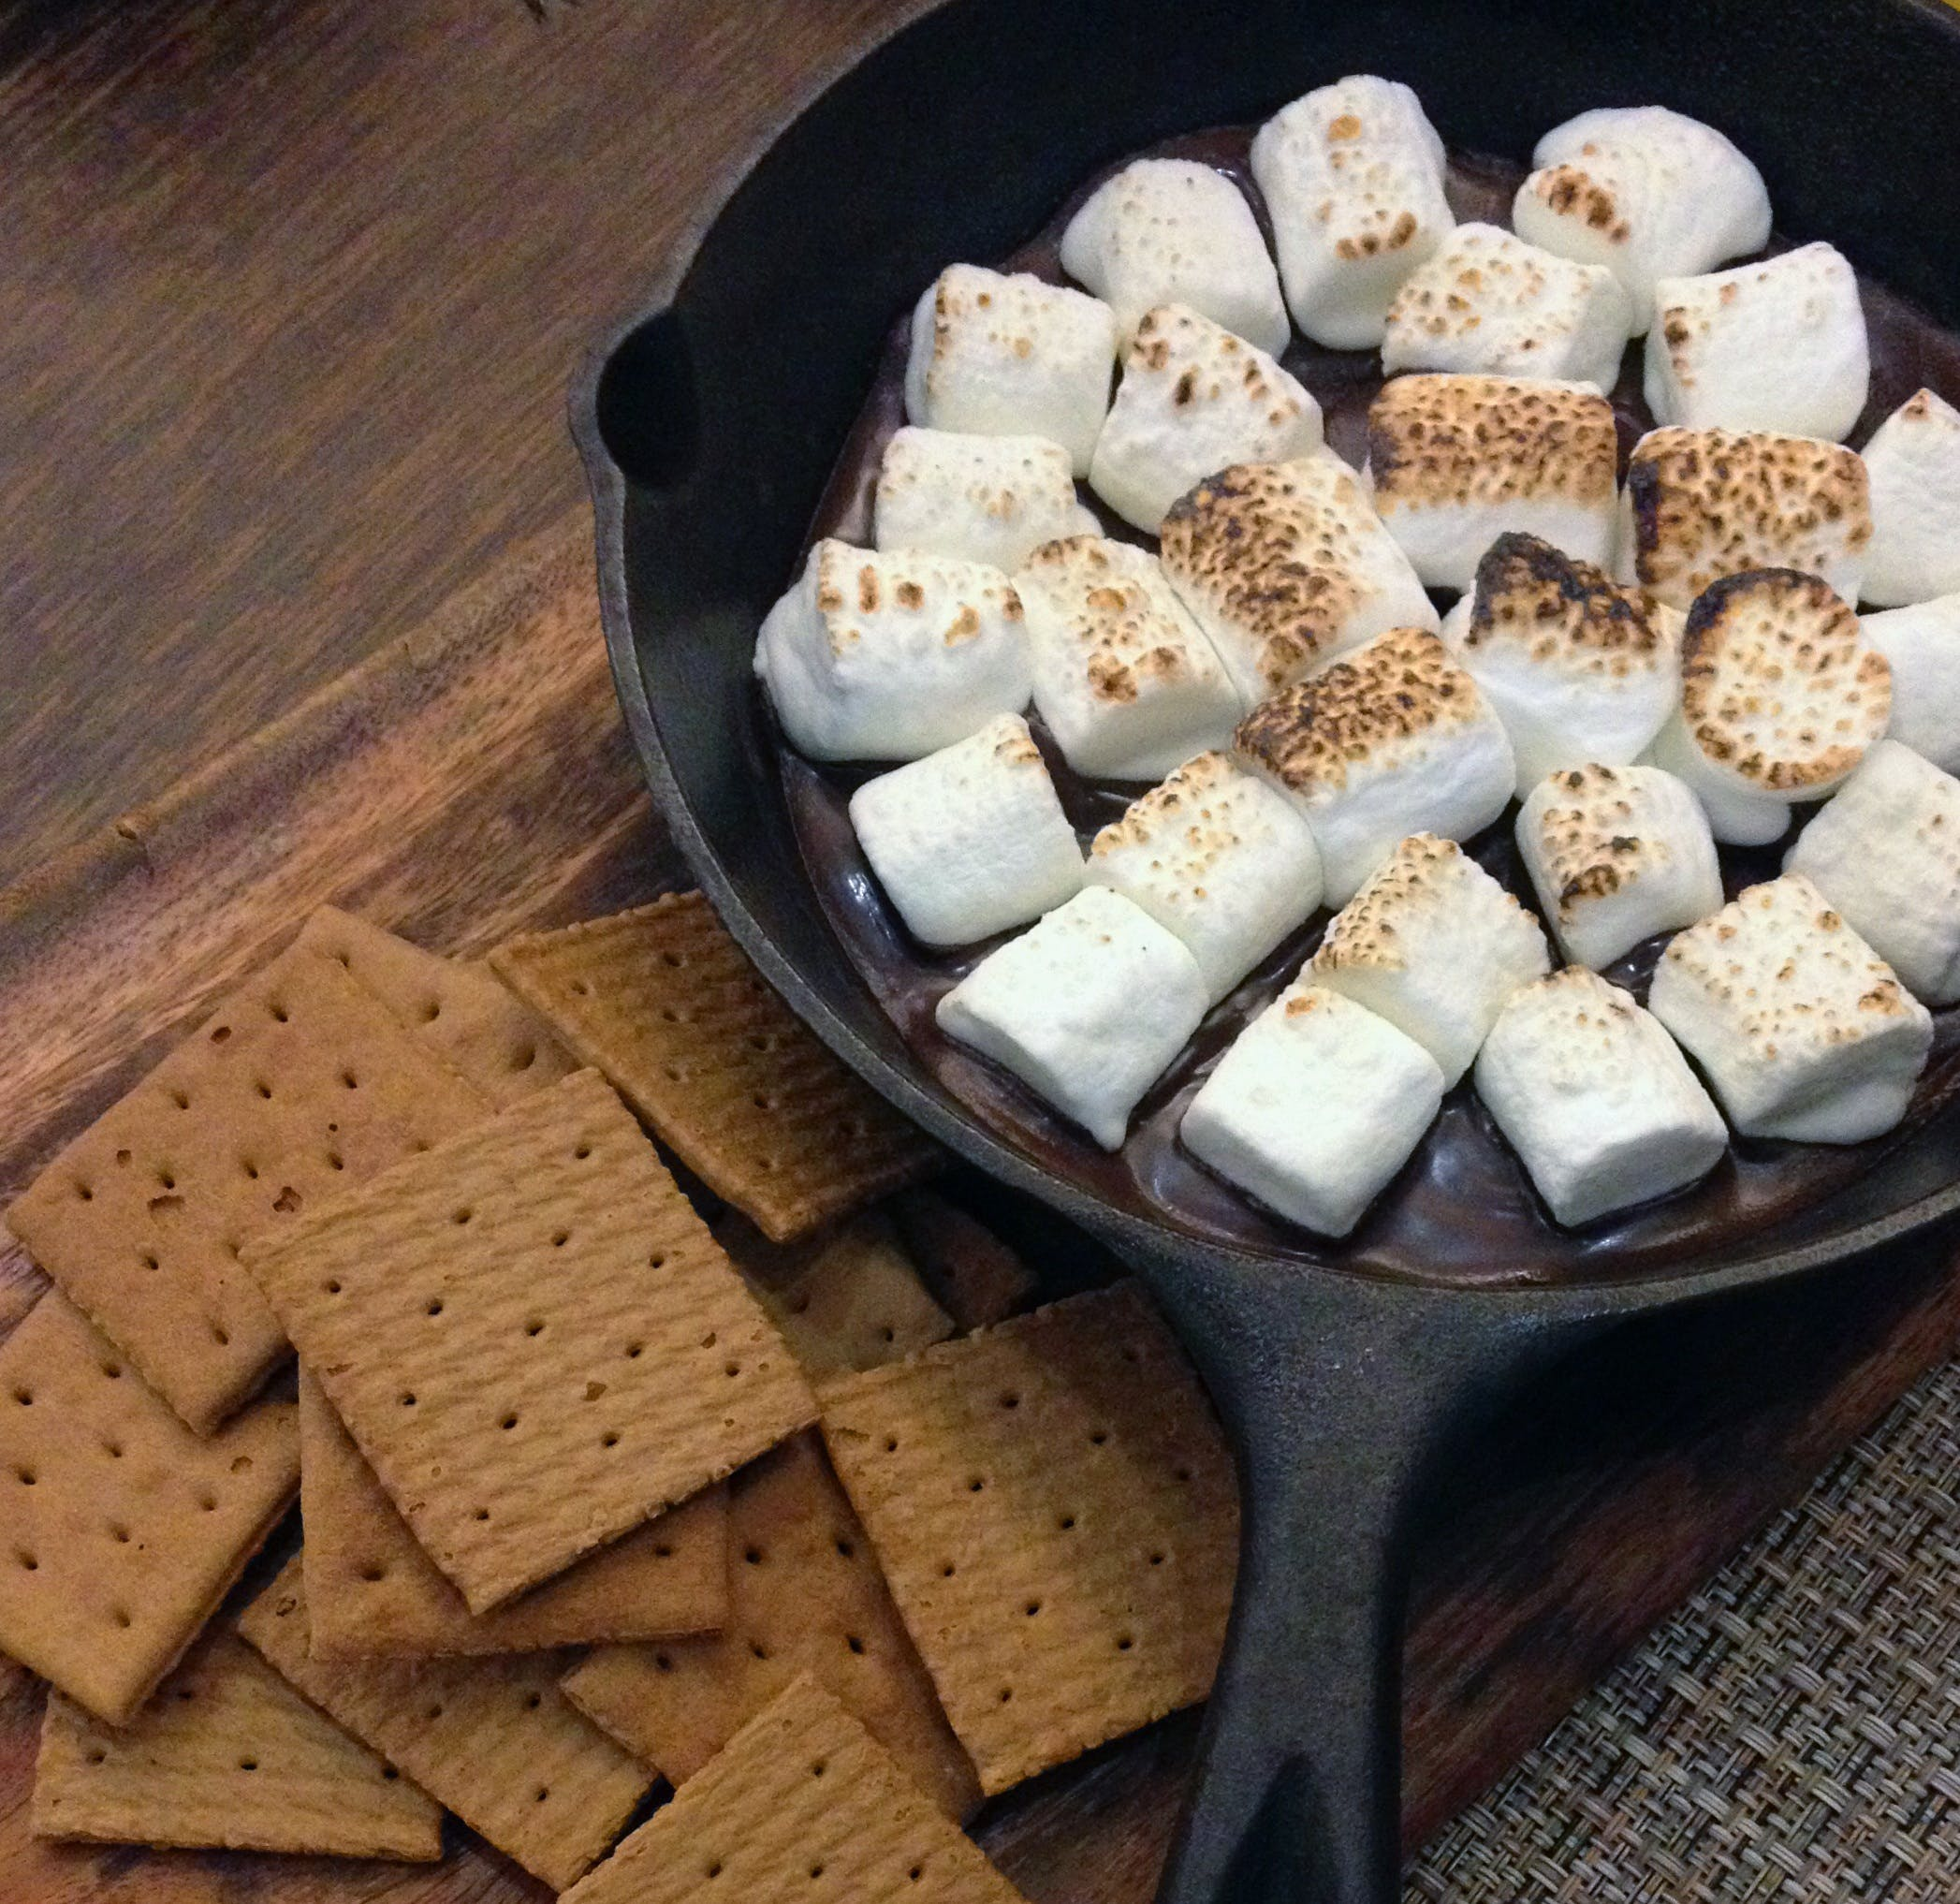 Fried Marshmallows on Top of Black Steel Nonstick Frying Pan